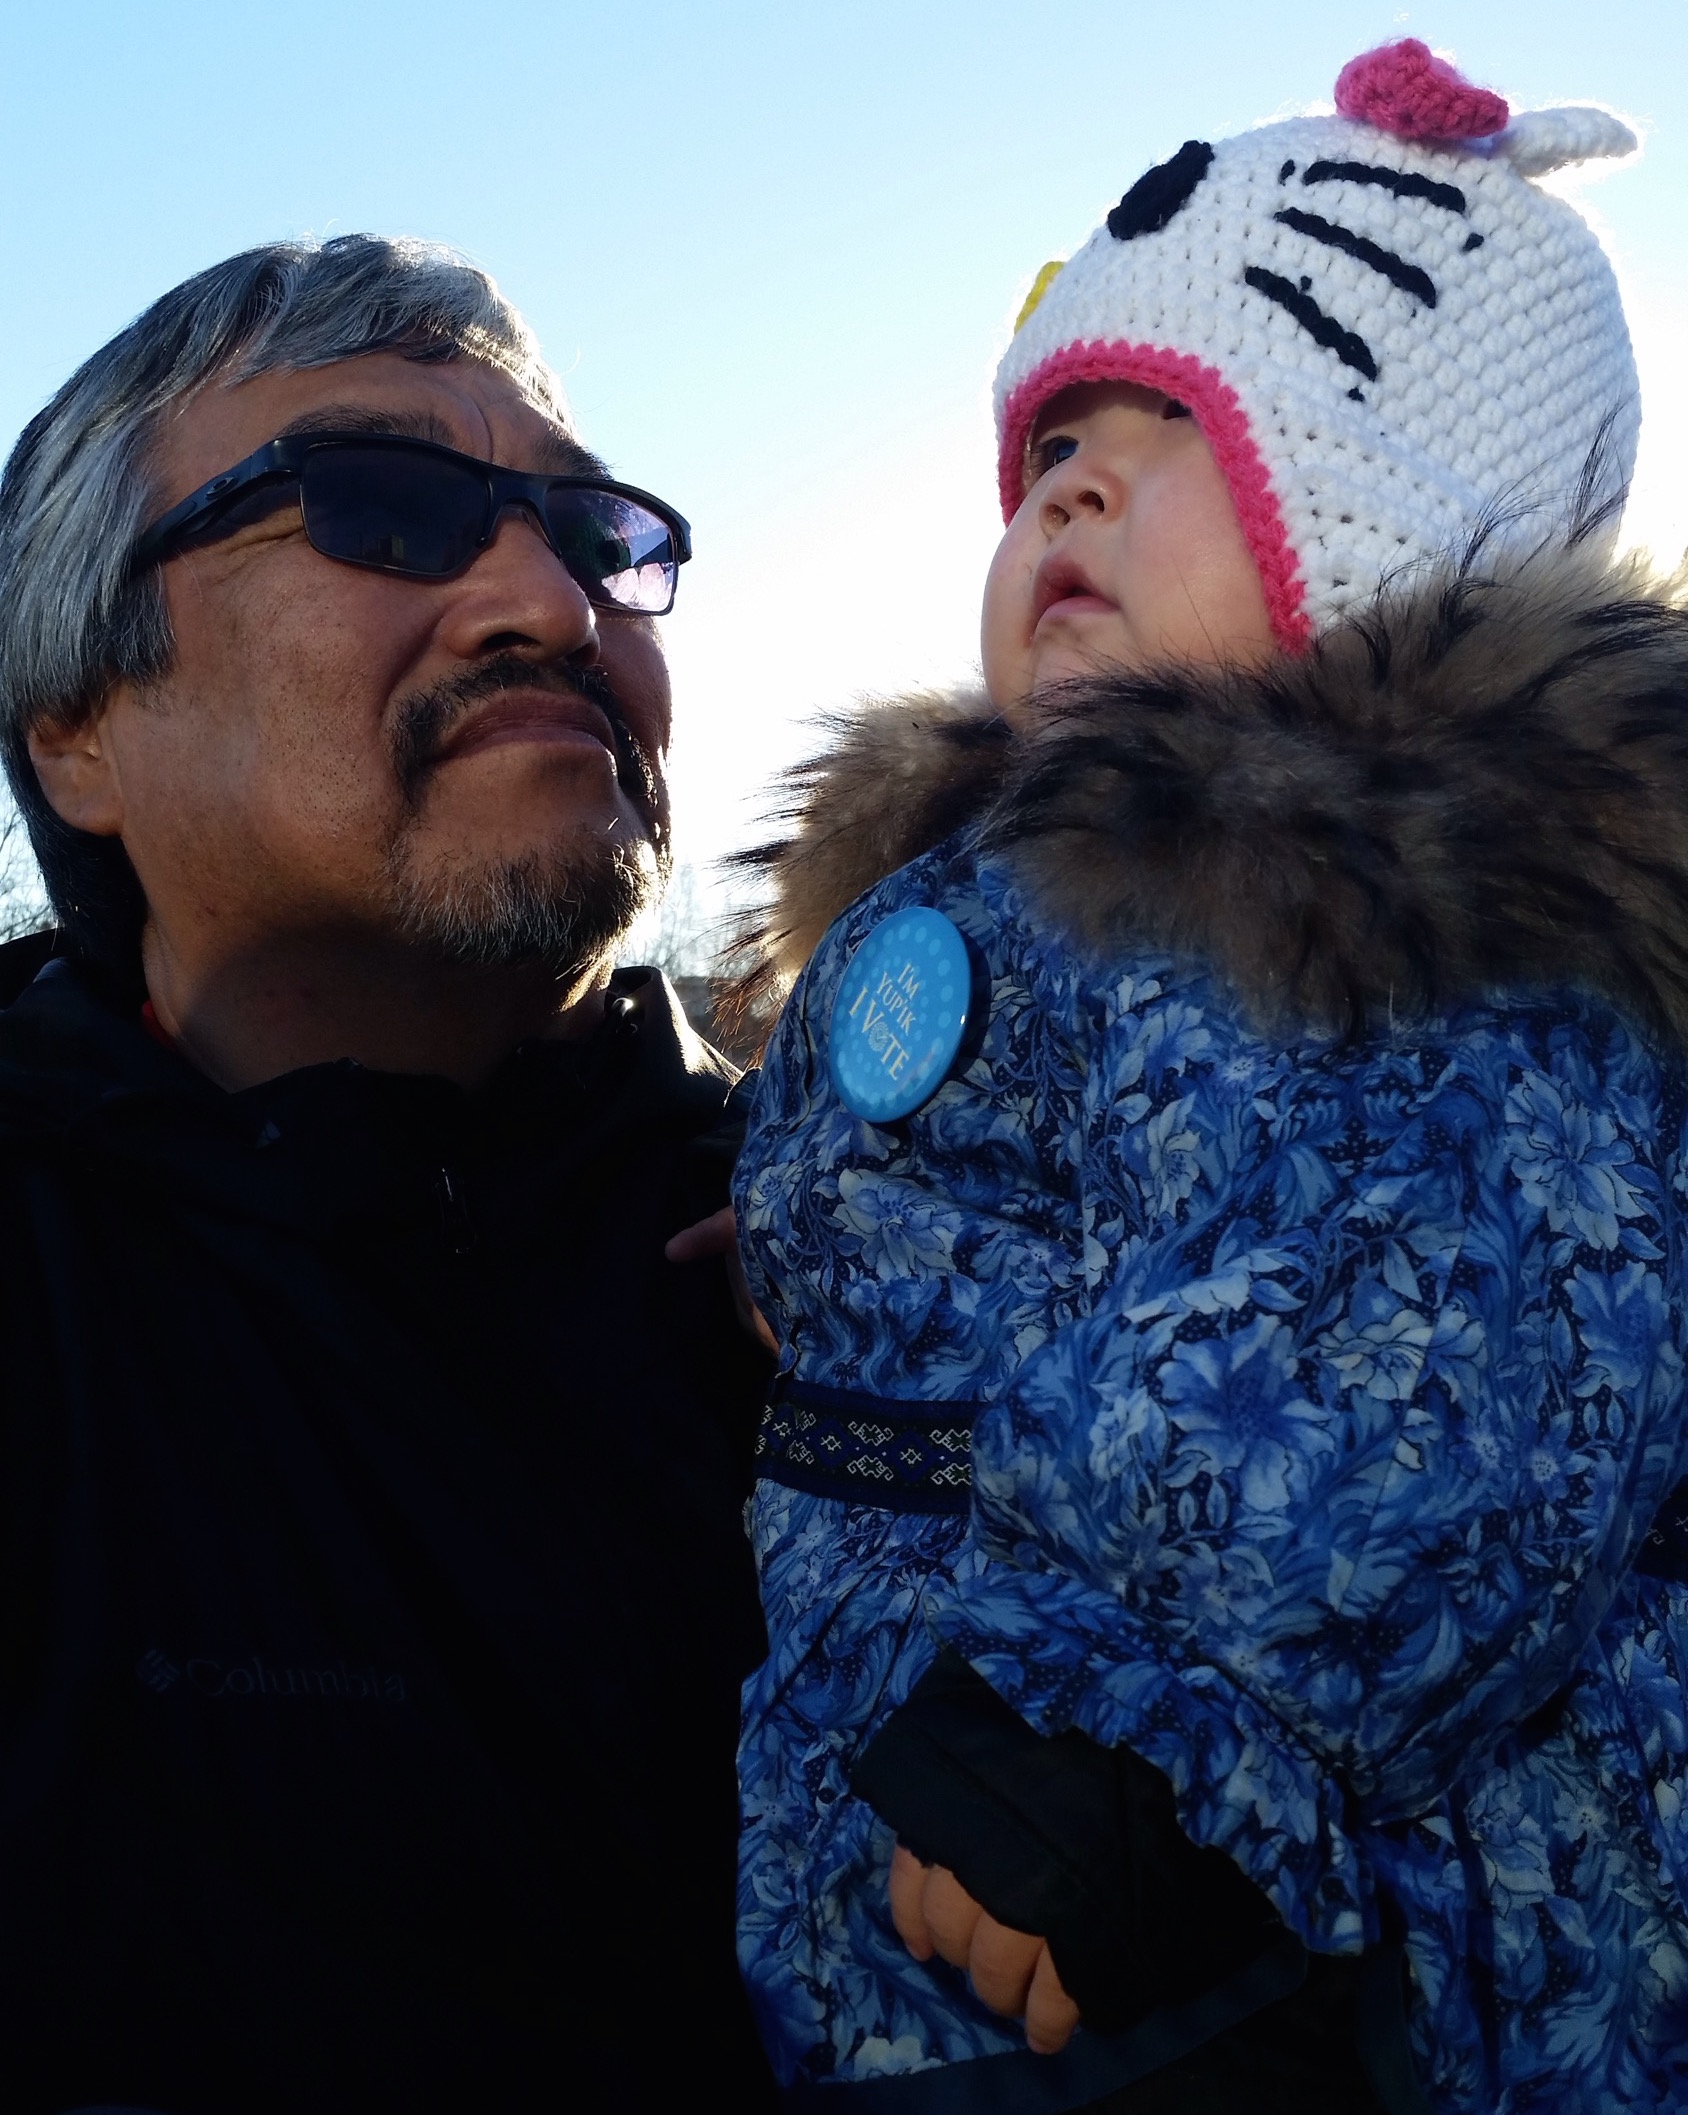 Mark Trahant: Alaska tribes eye role in wildlife management